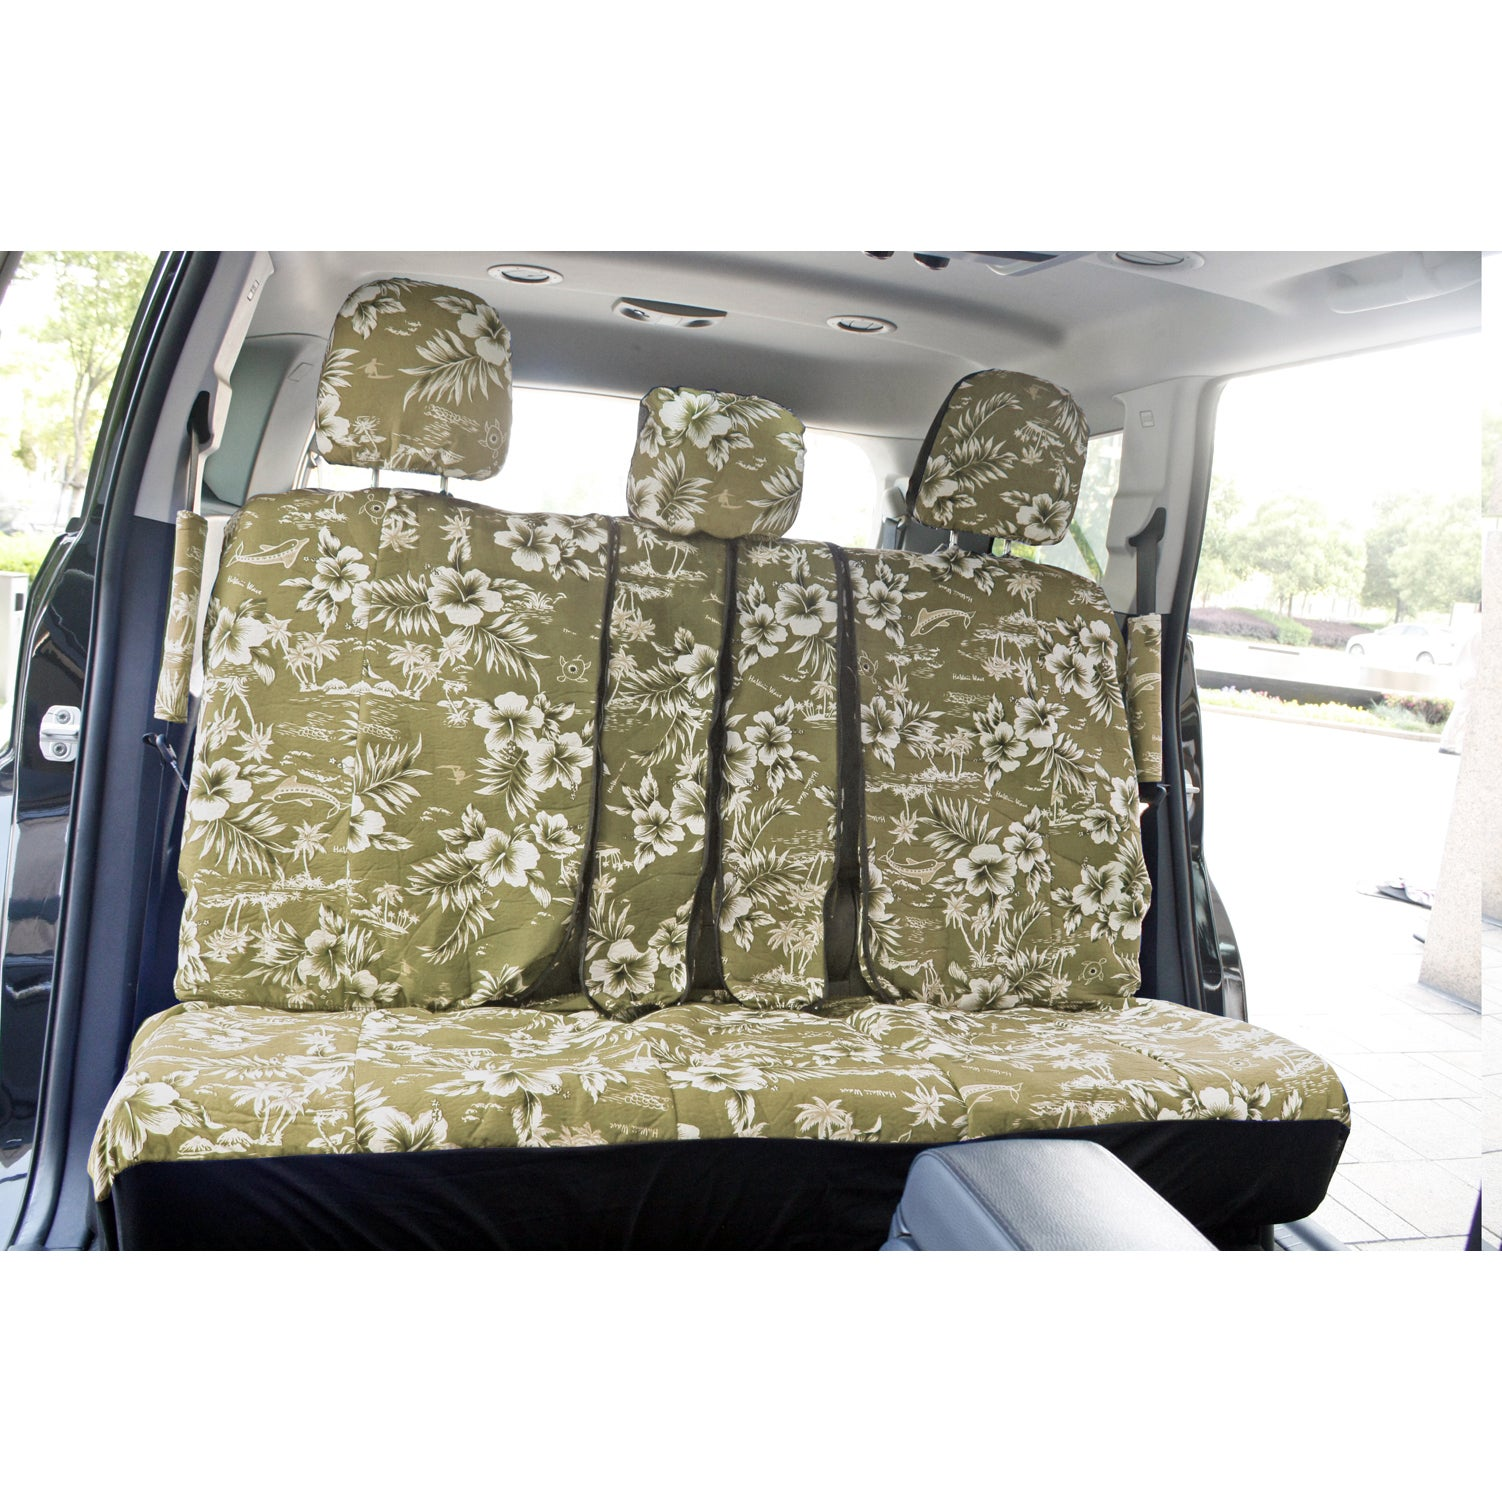 Shop oxgord hawaii beige tan 17 piece seat cover set with hawaiian shop oxgord hawaii beige tan 17 piece seat cover set with hawaiian hibiscus flowers free shipping on orders over 45 overstock 8768241 izmirmasajfo